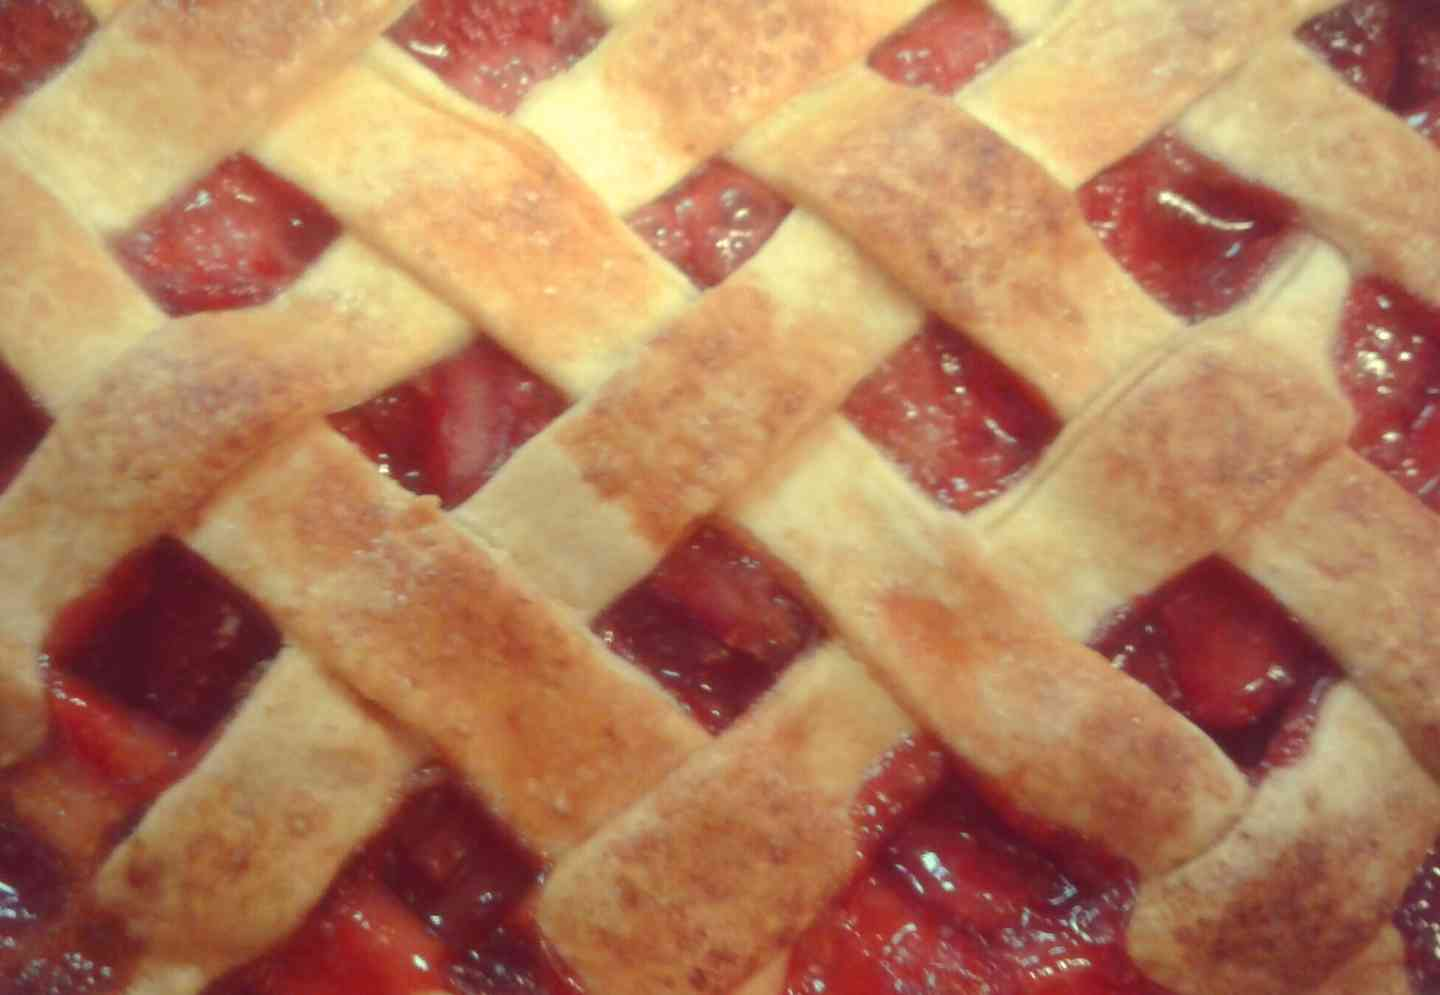 Strawberry Rhubarb (seasonal)